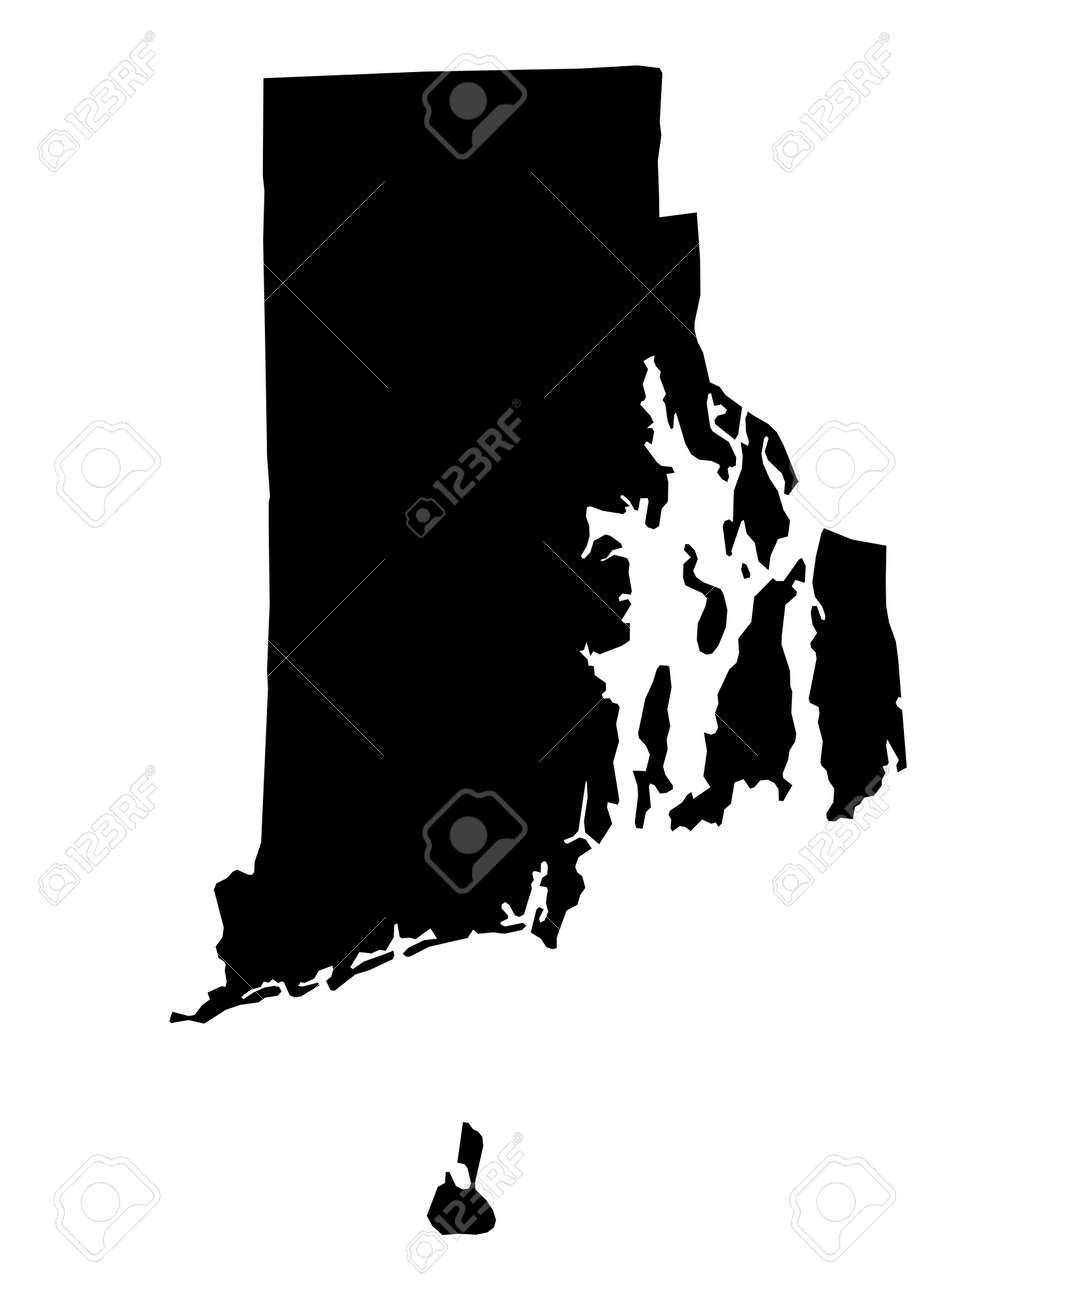 Detailed Isolated Bw Map Of Rhode Island Usa Mercator Rhode Island In Usa Map